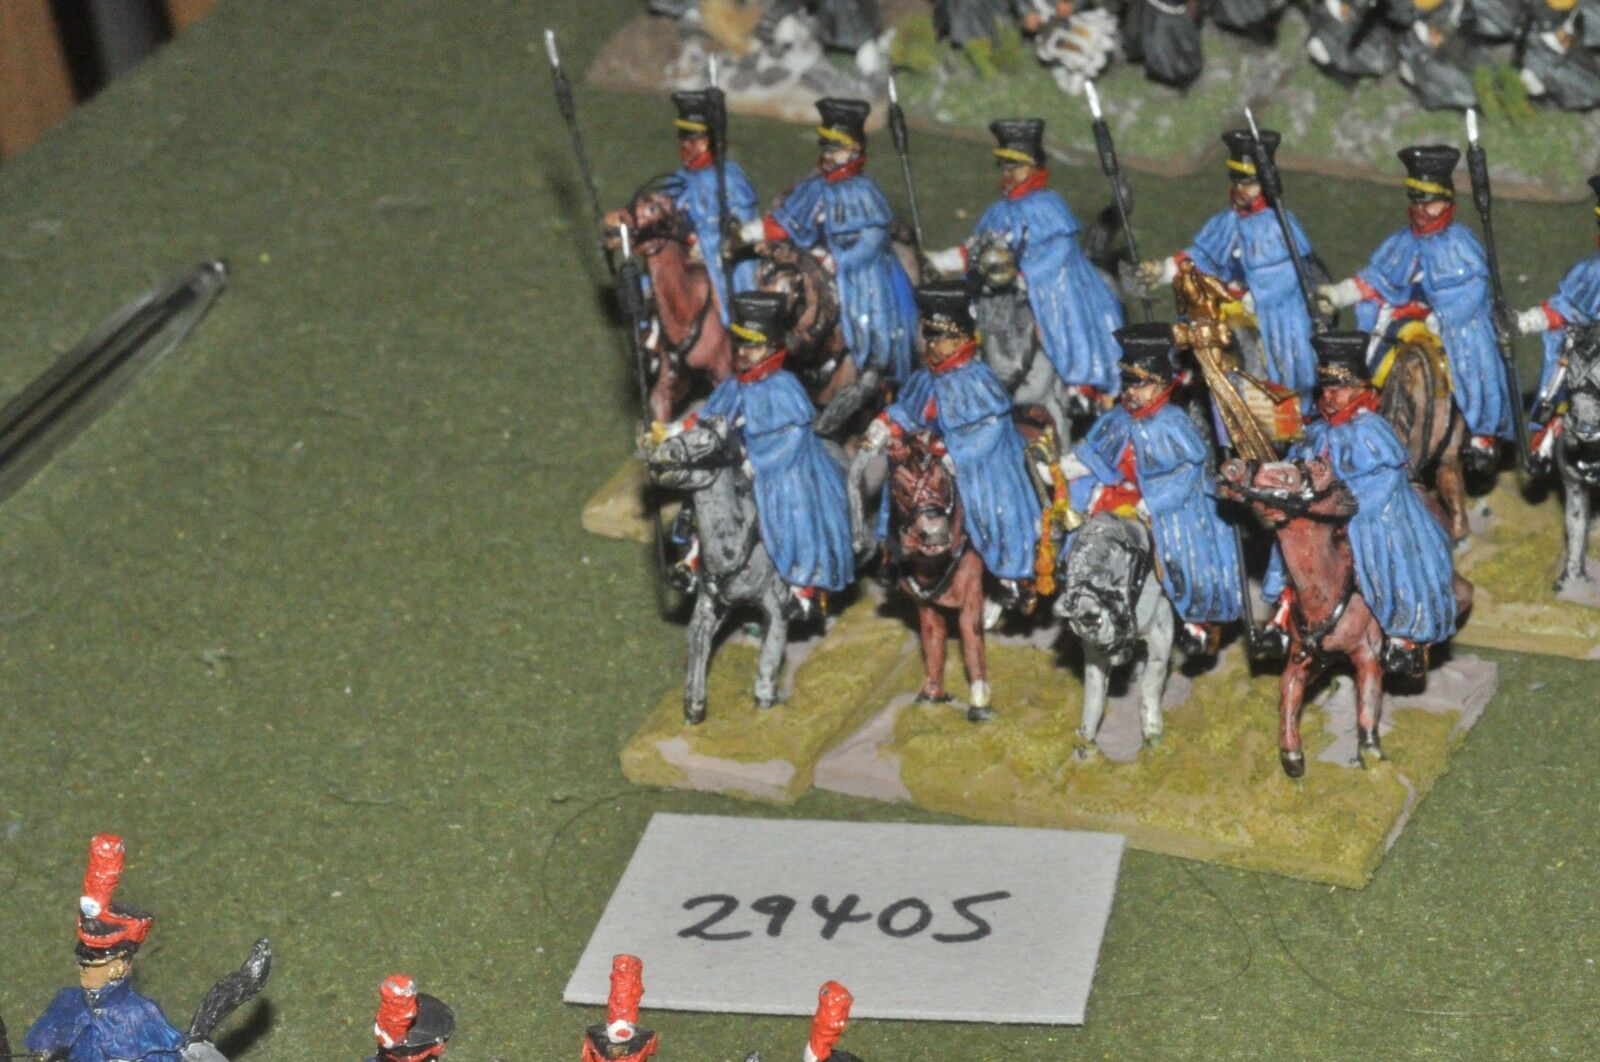 25mm napoleonic   french - lancers 10 figures - cav (29405)